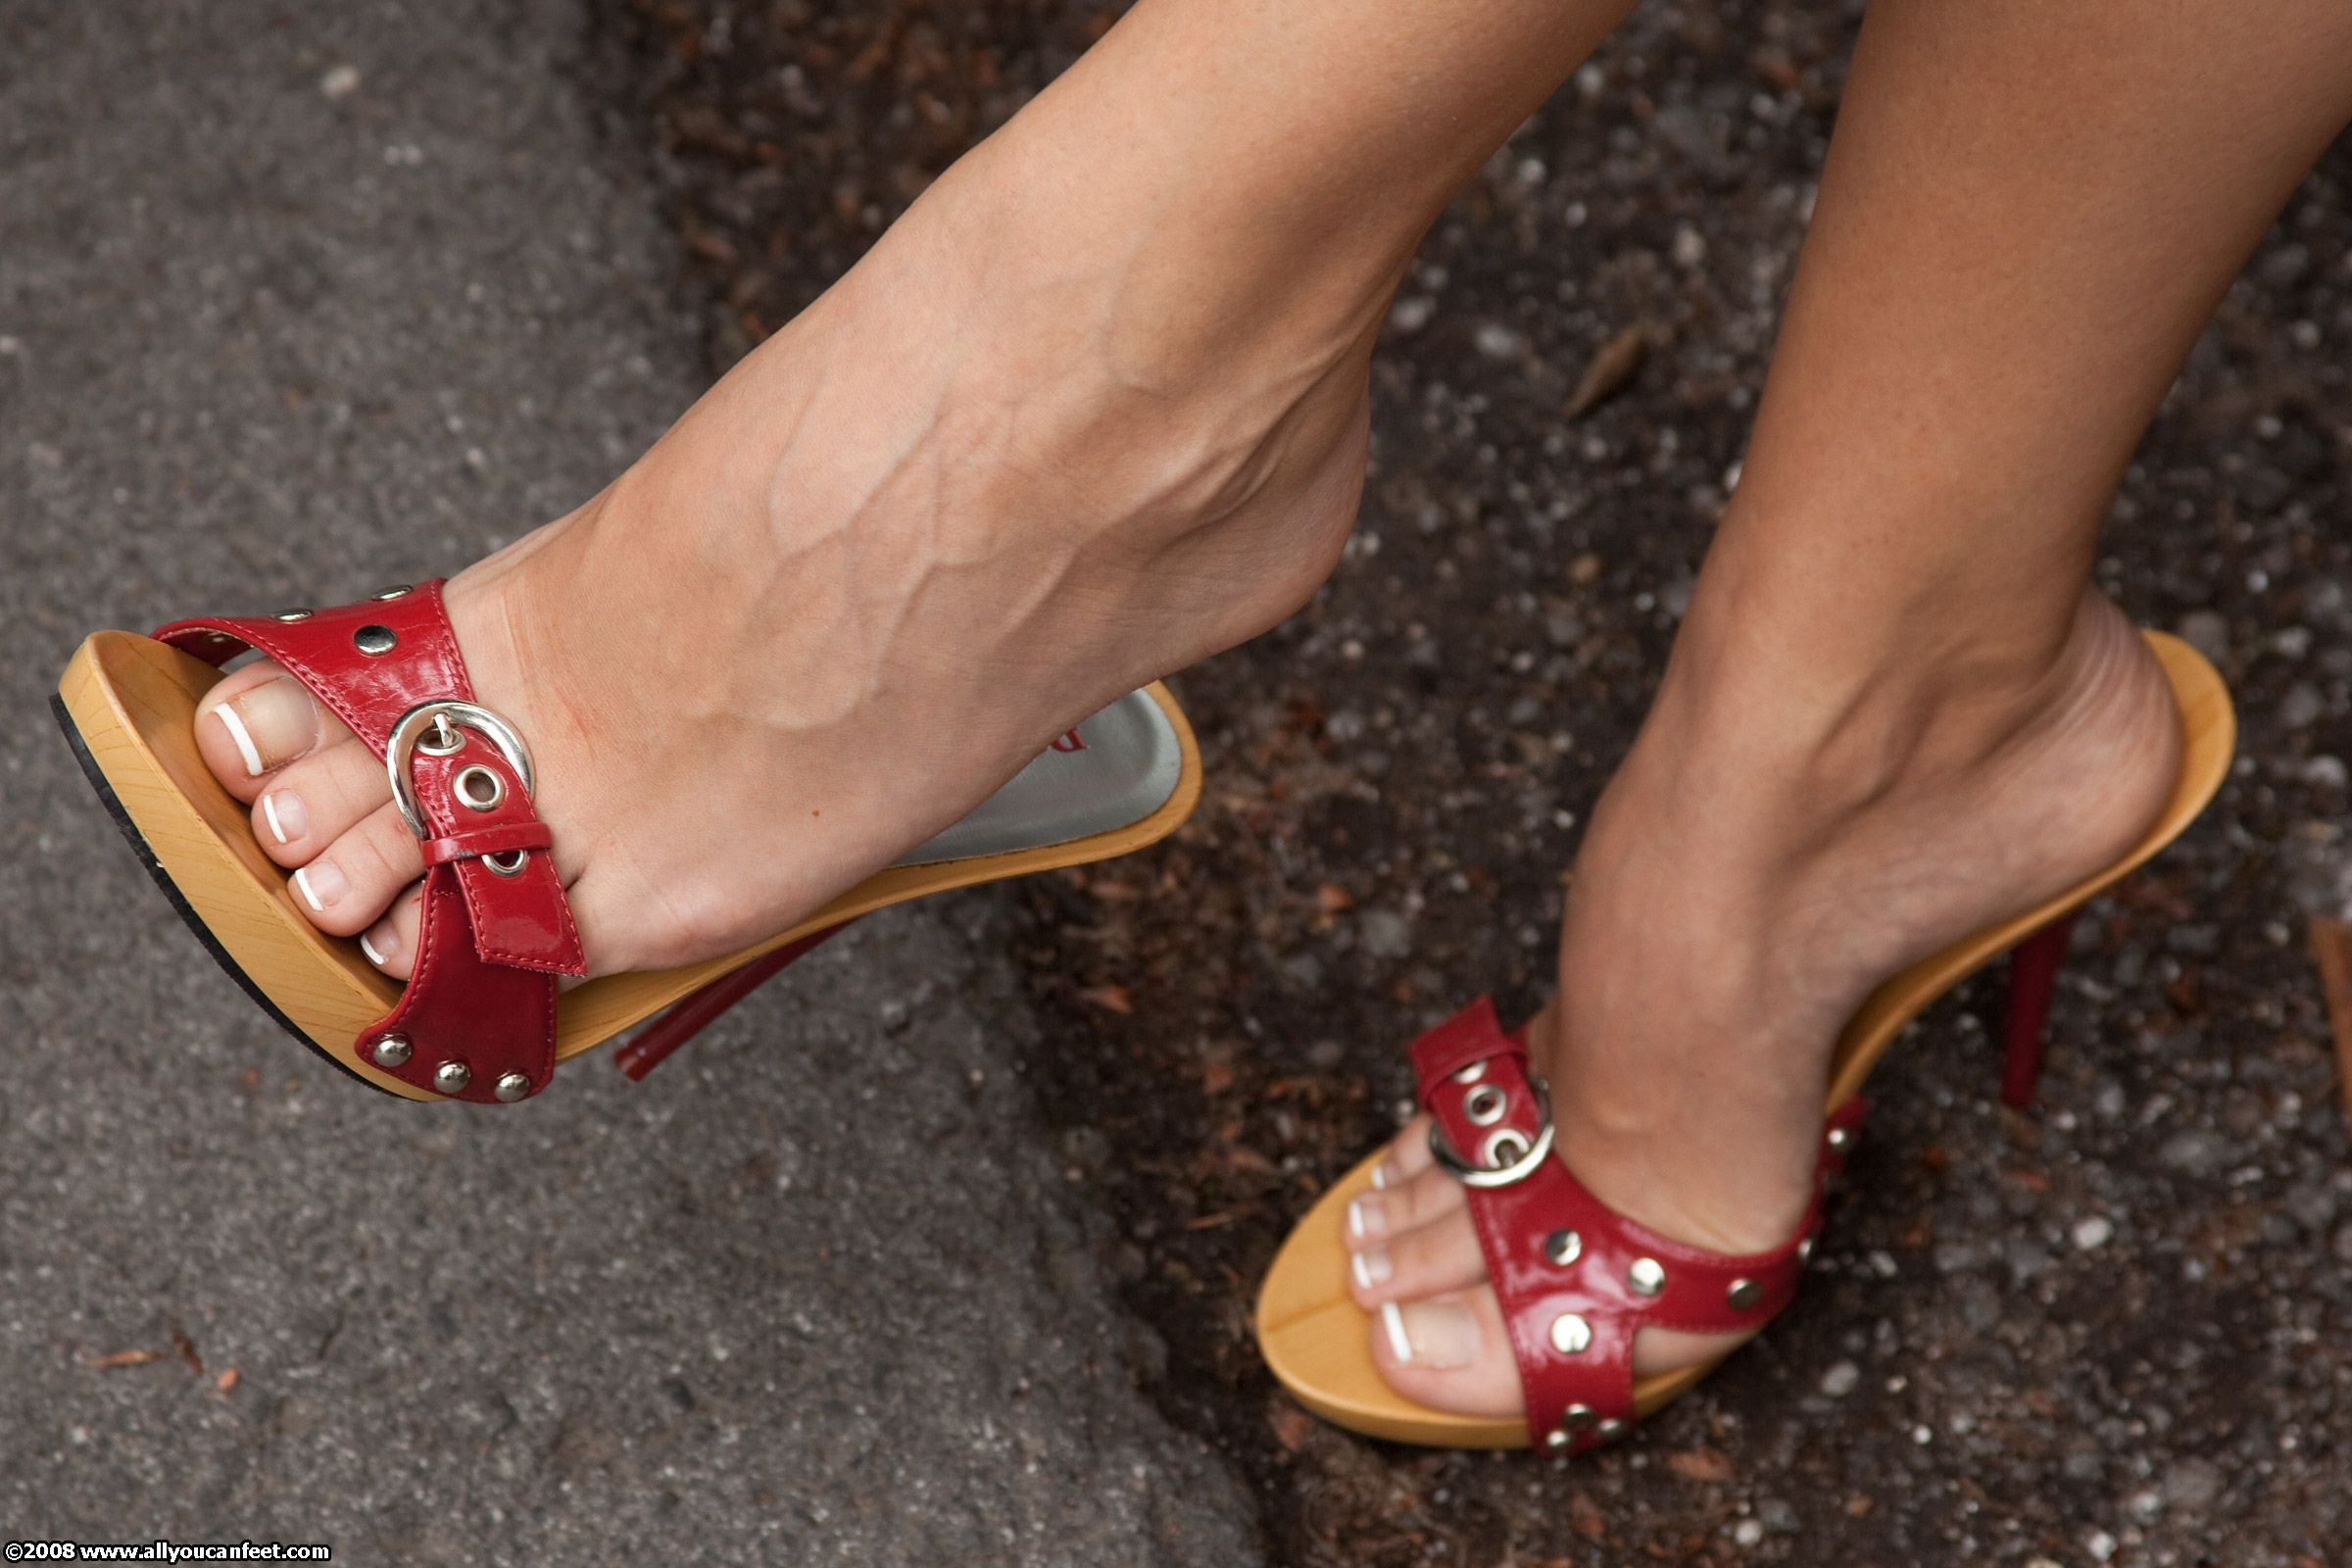 beautiful feet dorinkaves85 | clogs and wood heels | pinterest